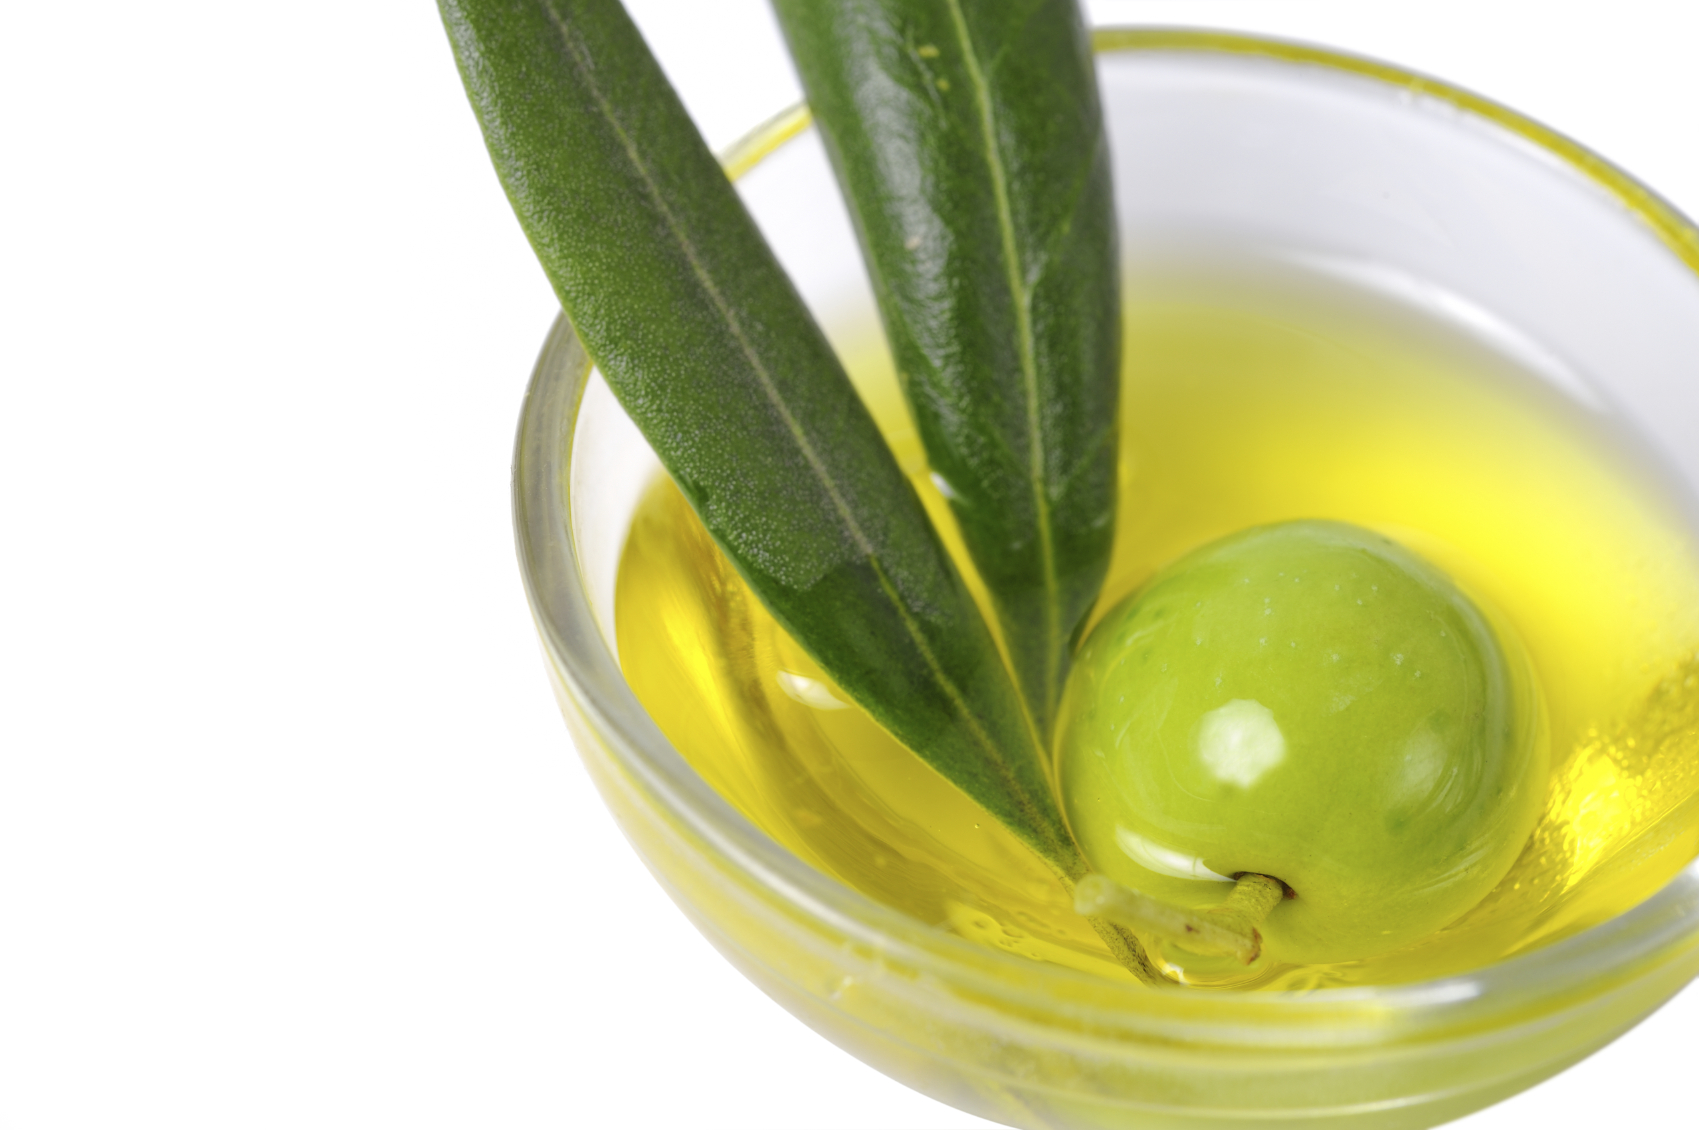 first,you microwave 10cm of olive oil for 20 seconds